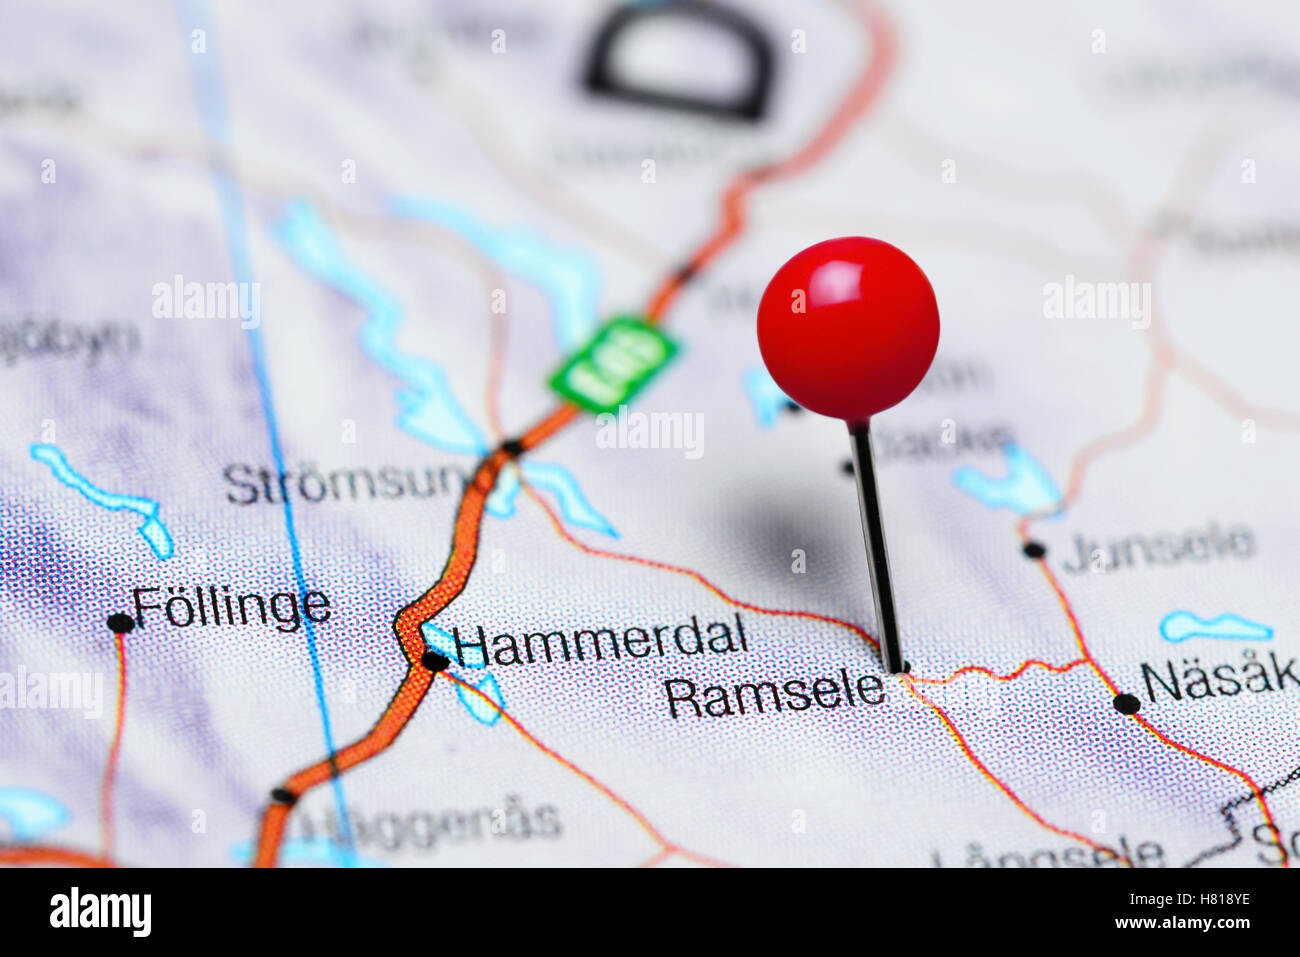 Ramsele pinned on a map of Sweden - Stock Image